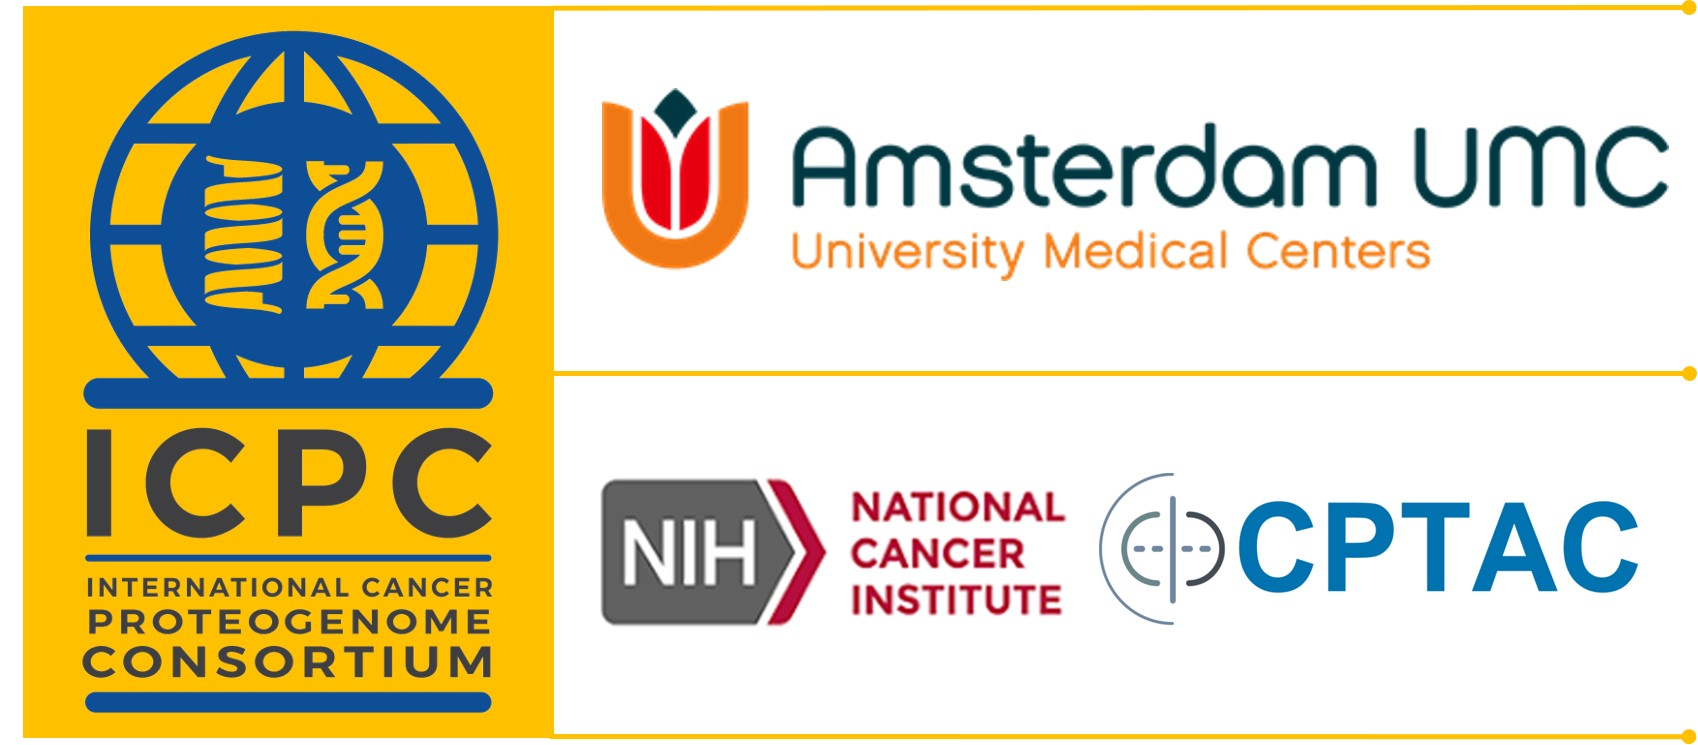 International Cancer Proteogenome Consortium and Amsterdam UMC logos